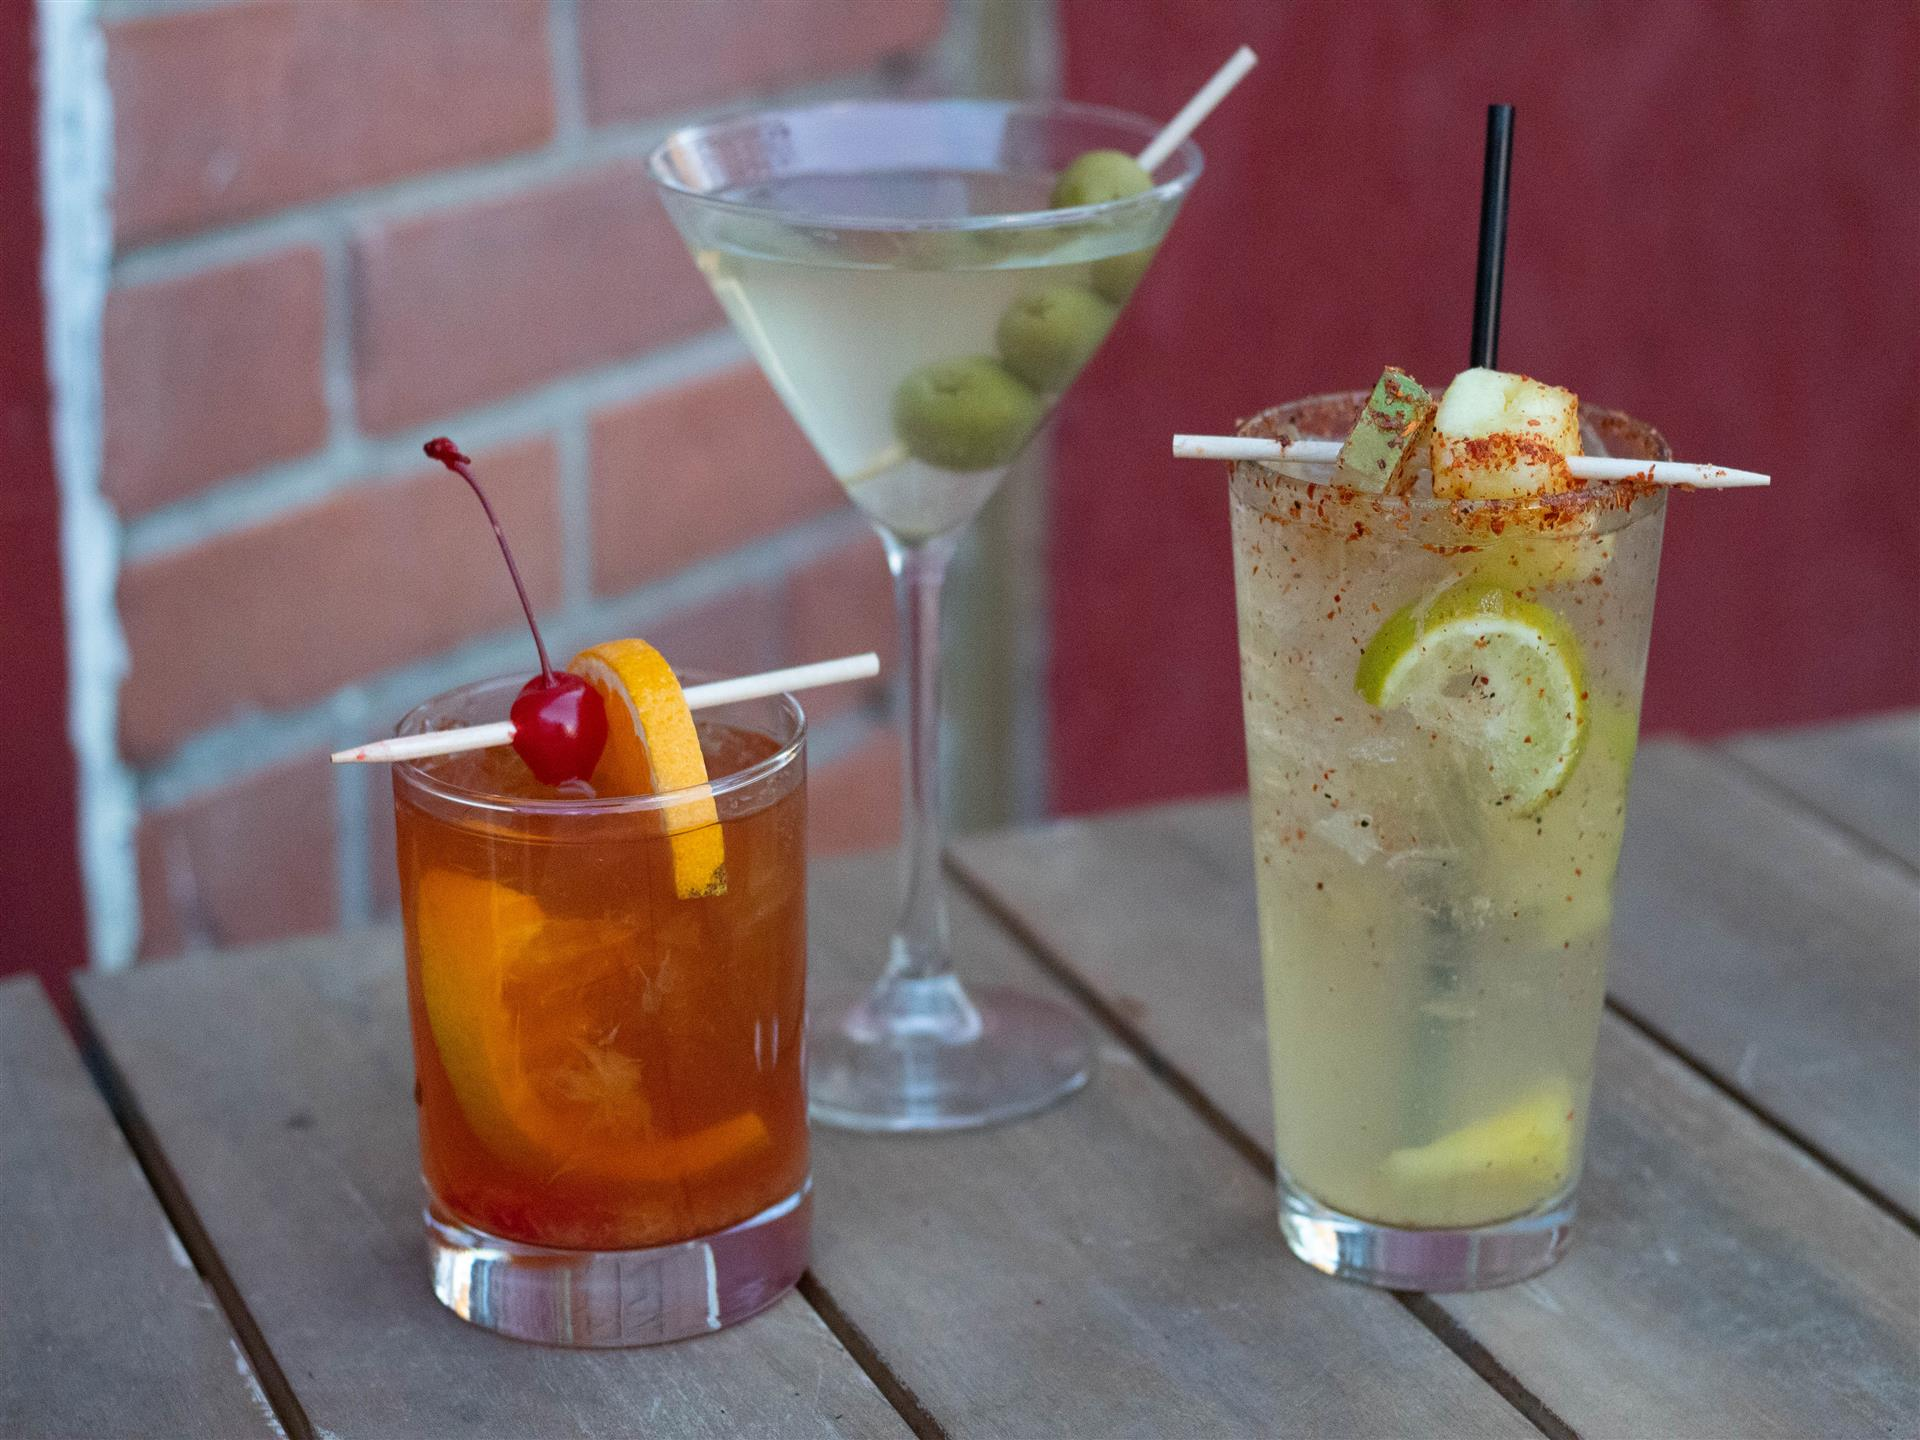 Old Fashioned, Dirty Martini, Spicy Pineapple Margarita